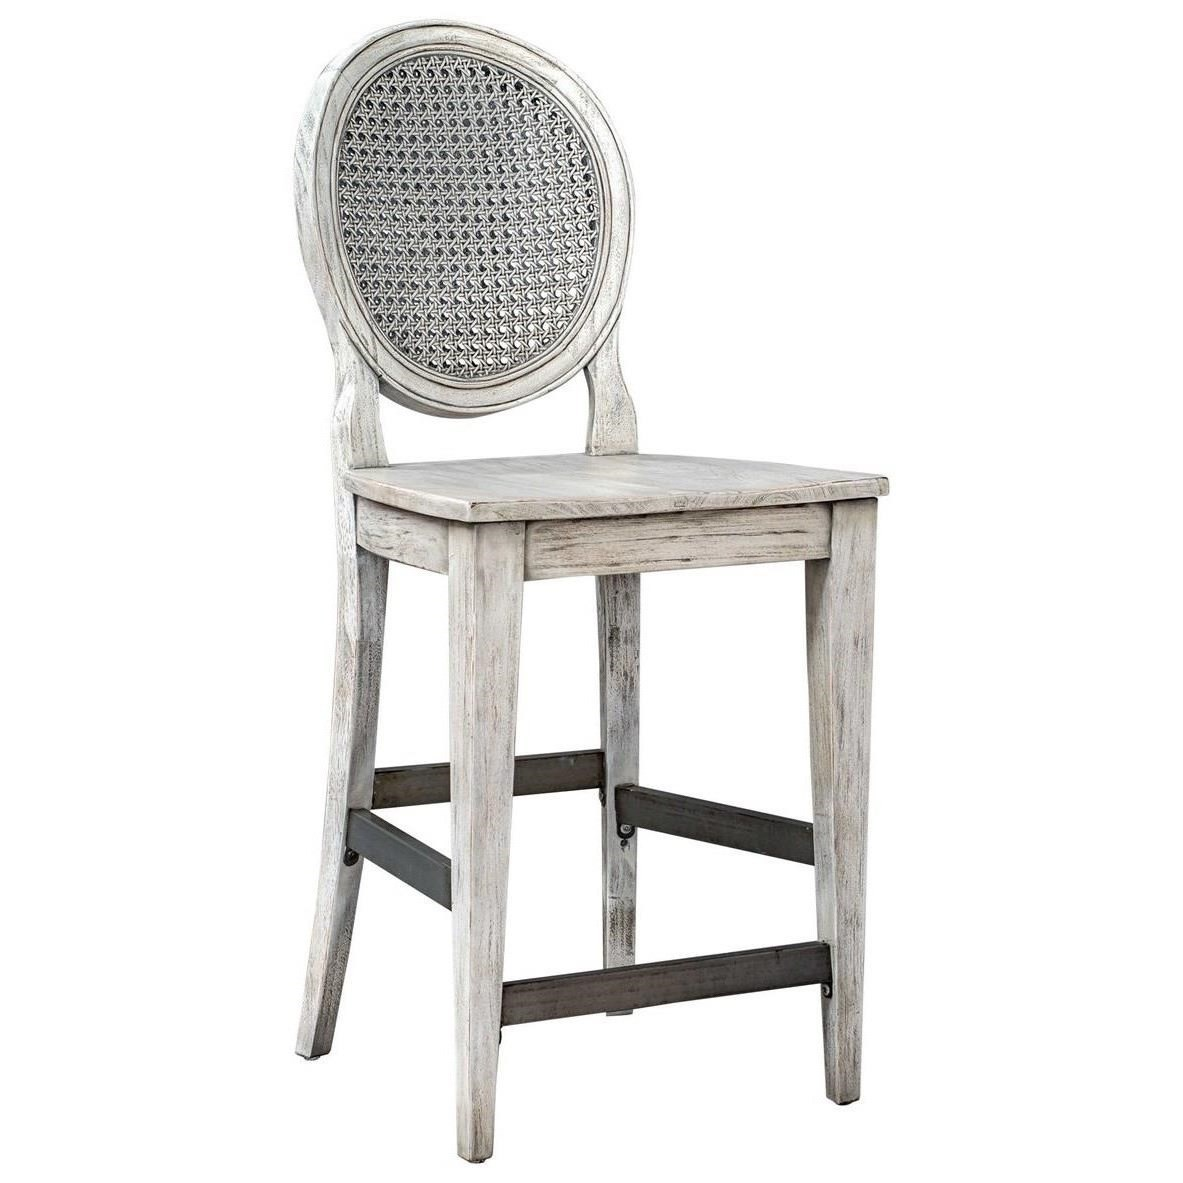 Accent Furniture - Stools Clarion Aged White Counter Stool by Uttermost at O'Dunk & O'Bright Furniture